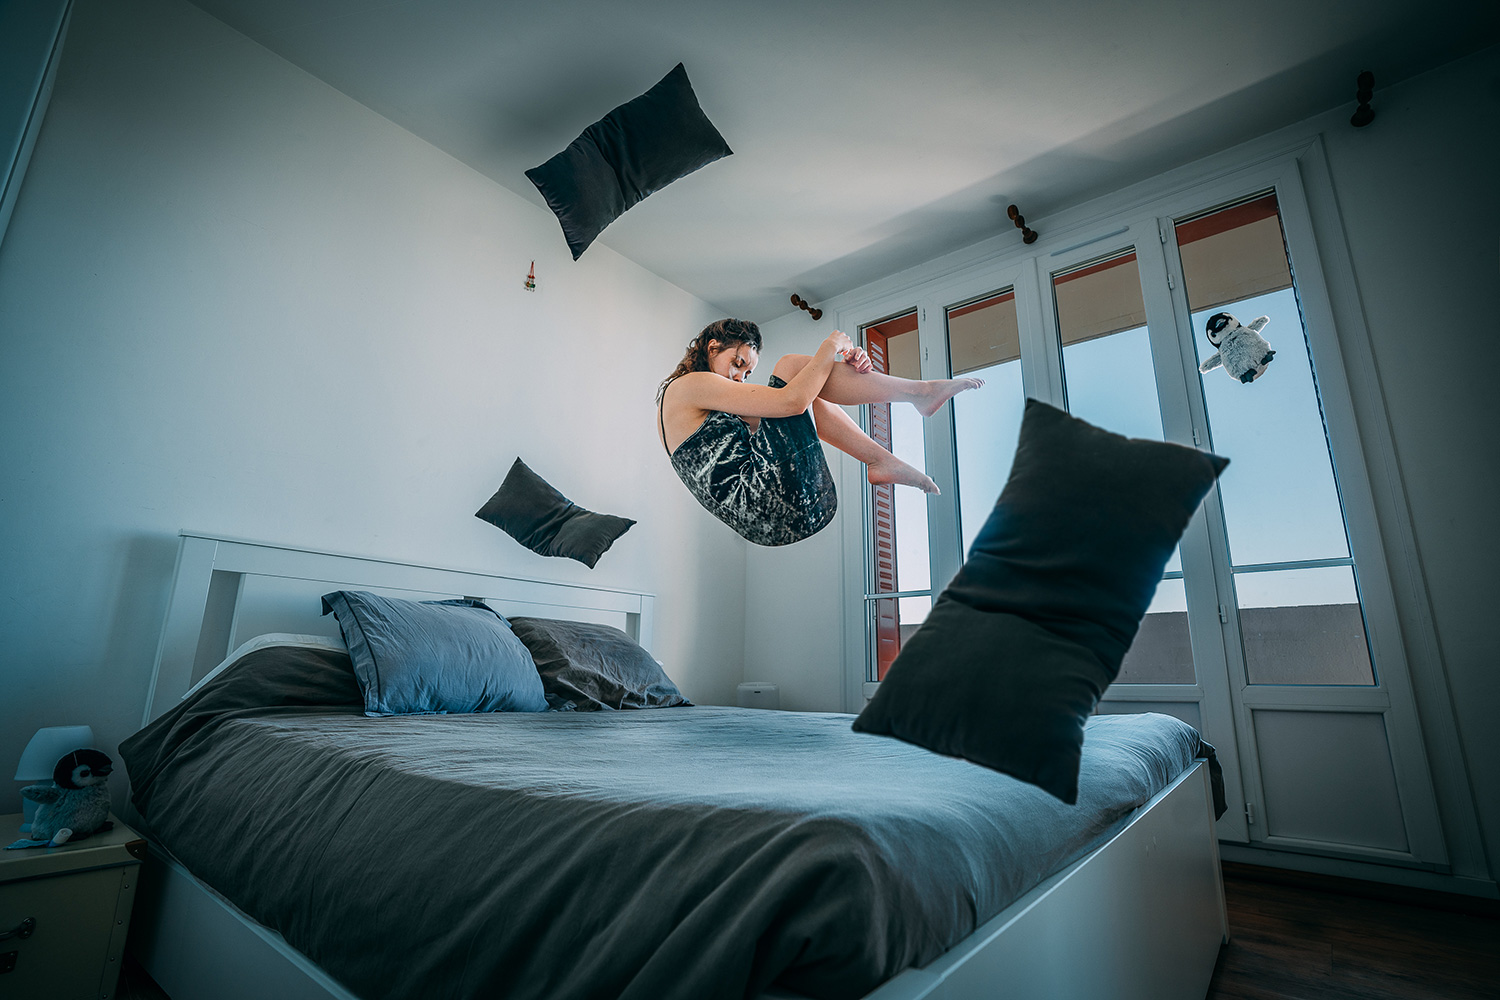 DIY photo idea – woman floating above a bed